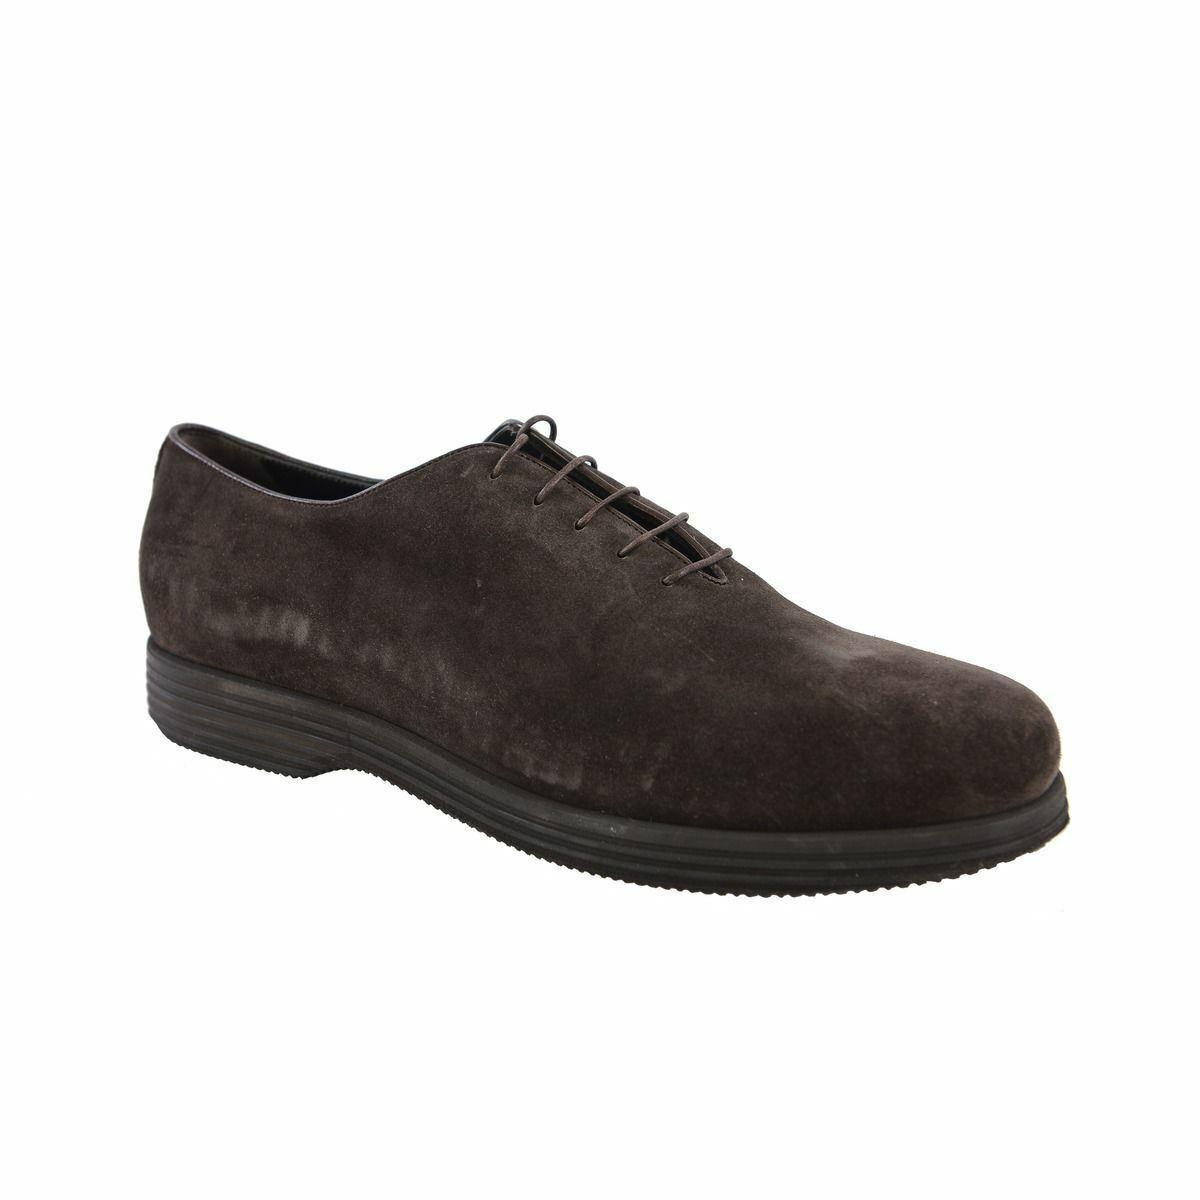 Giorgio Armani Dark Brown Suede Lace Up Casual shoes US 12 12.5